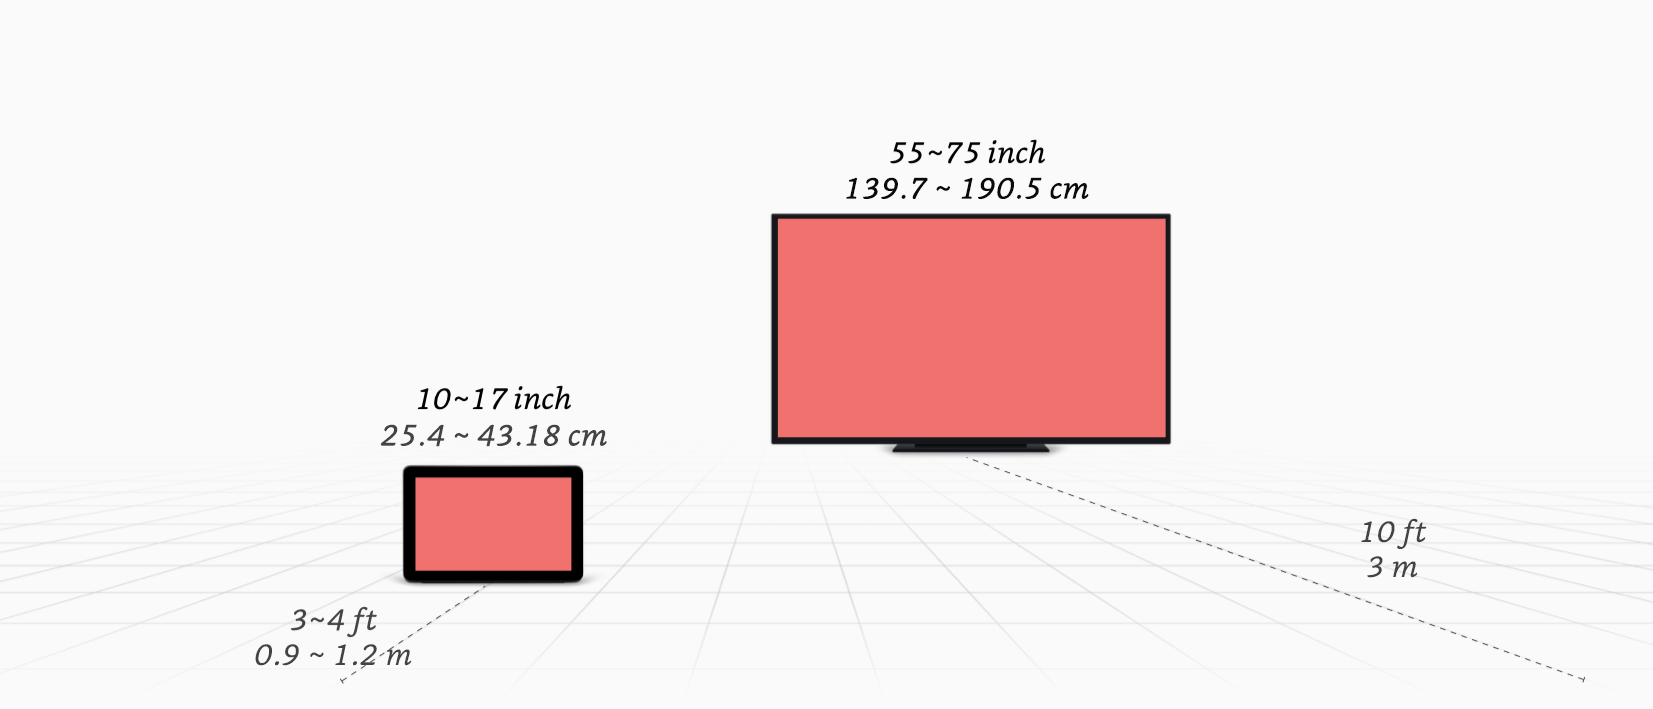 Fire TV Auto vs home Fire TV viewing distance